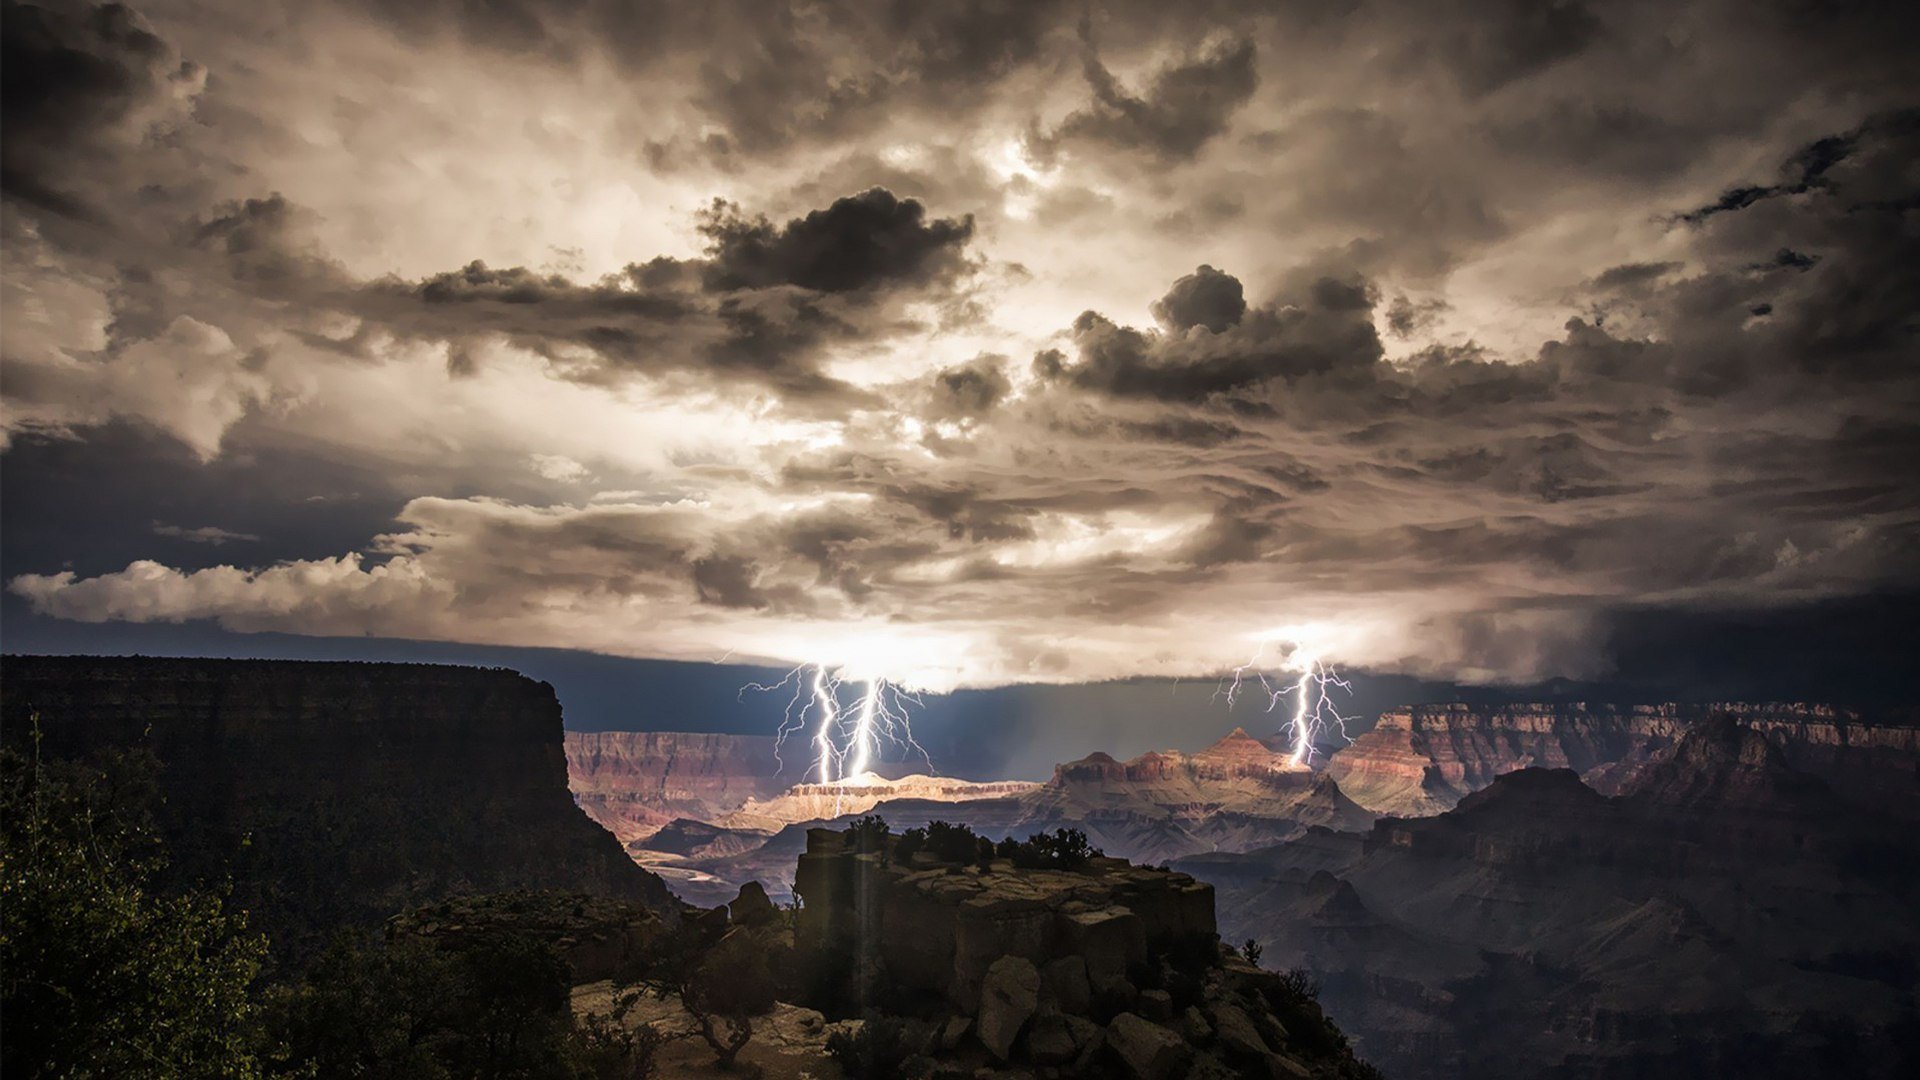 The Grand Canyon electrified by lightnings at night ...